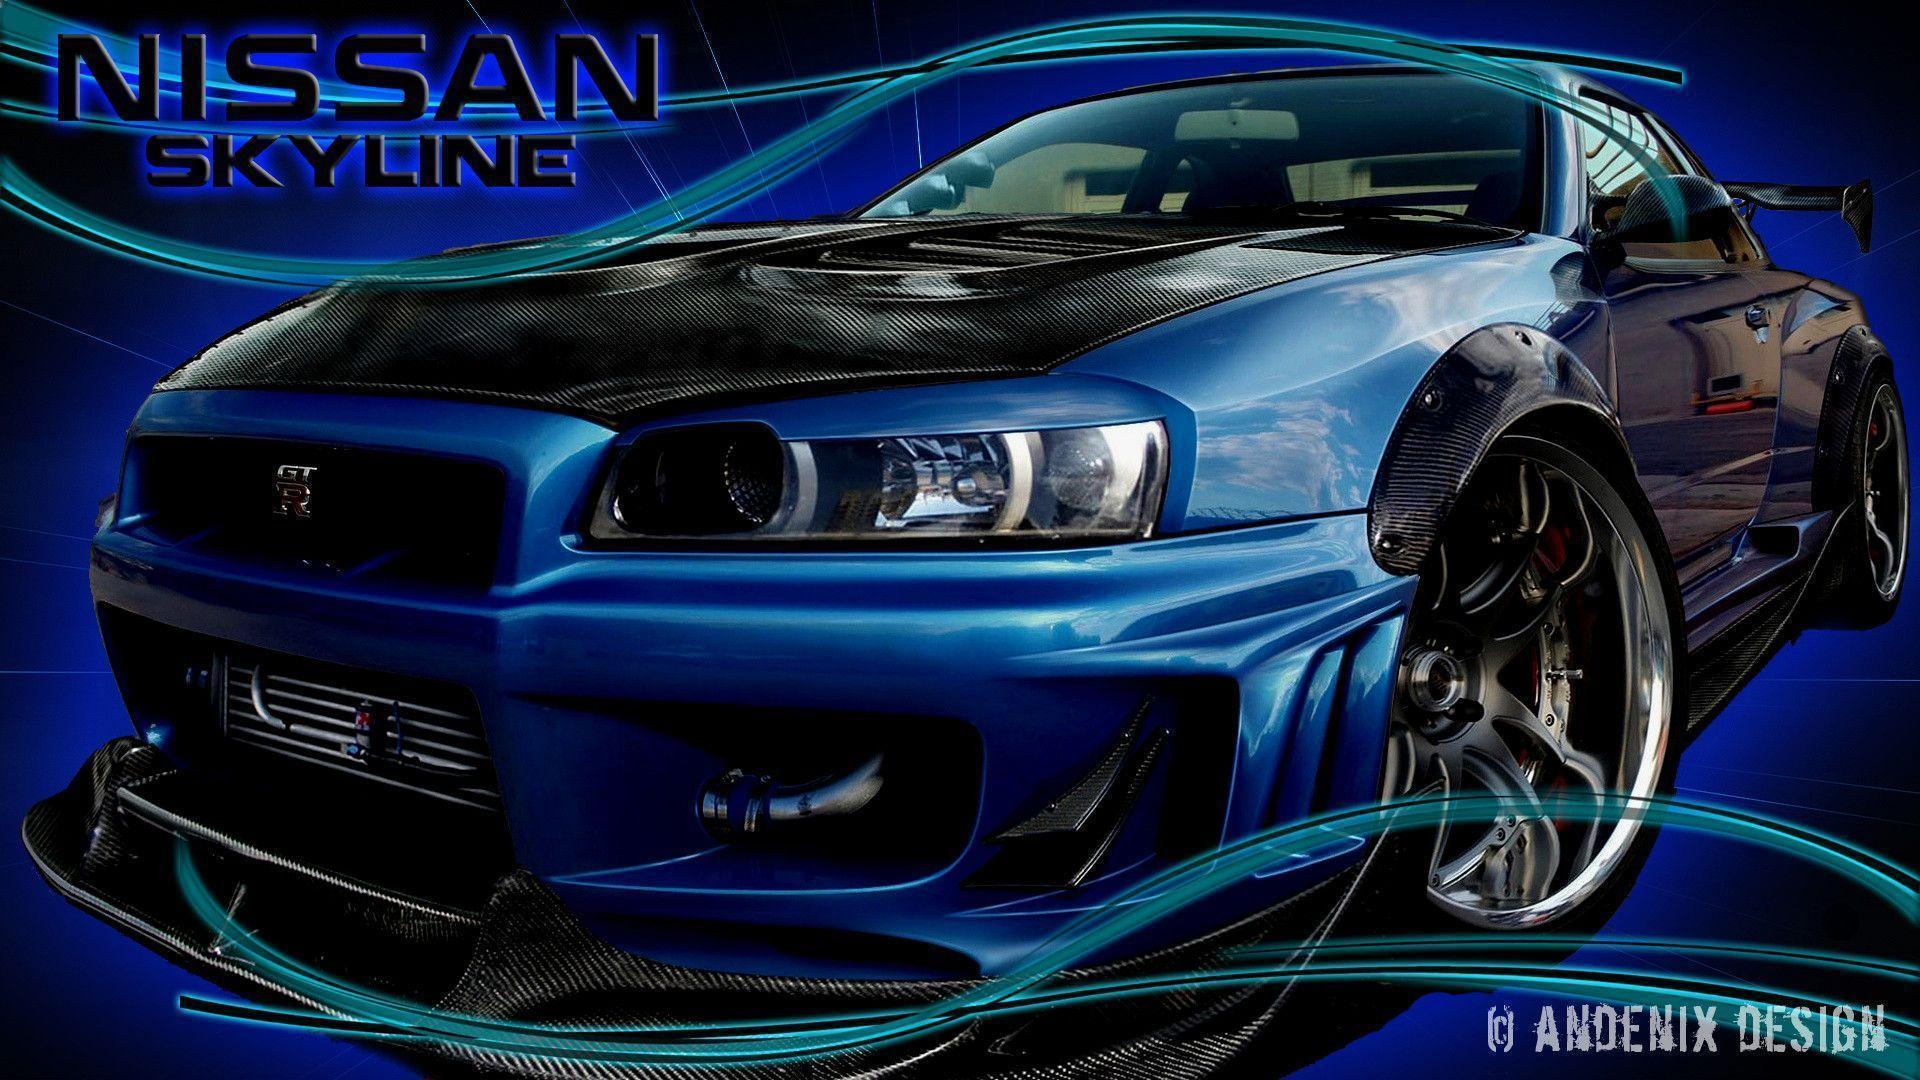 Nissan skyline wallpapers wallpaper cave - Nissan skyline background ...